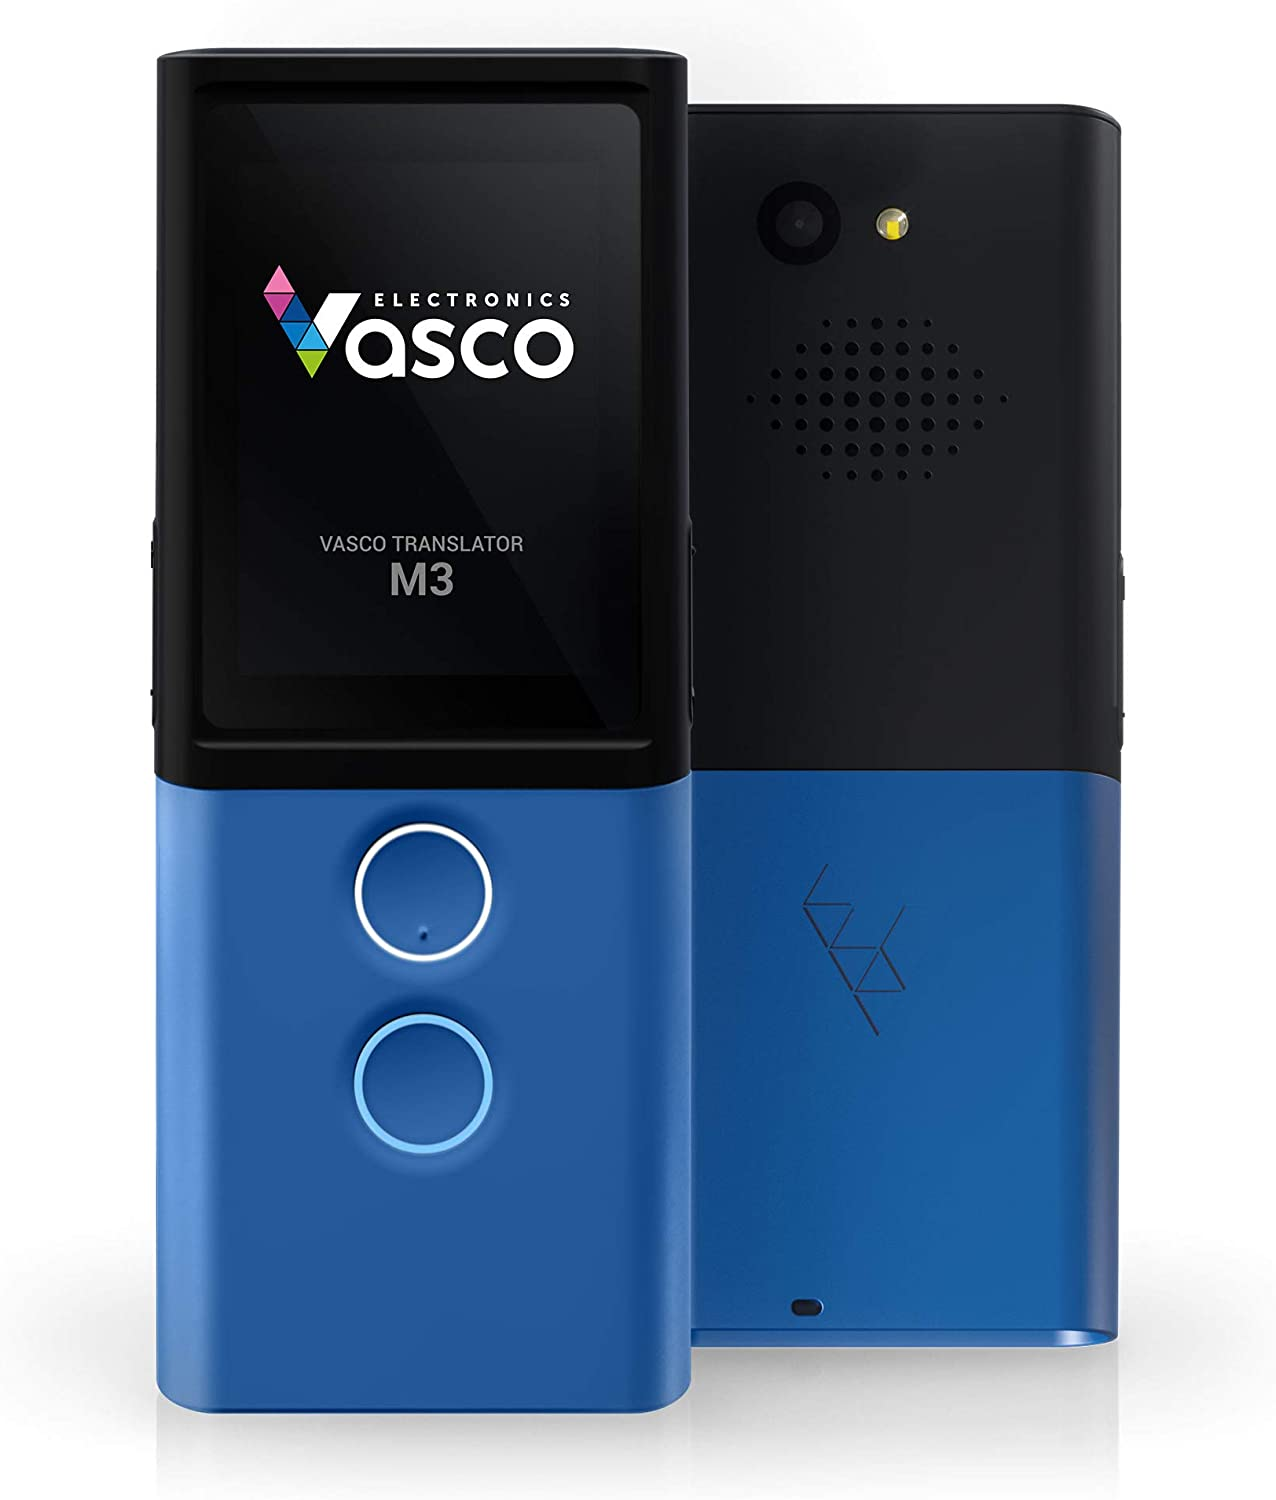 Fast Instant Voice /& Photo Translation Vasco M3 Translator Device Portable Two-Way Language Interpreter Free /& Unlimited Internet in 200+ Countries Under 0.5 Sec